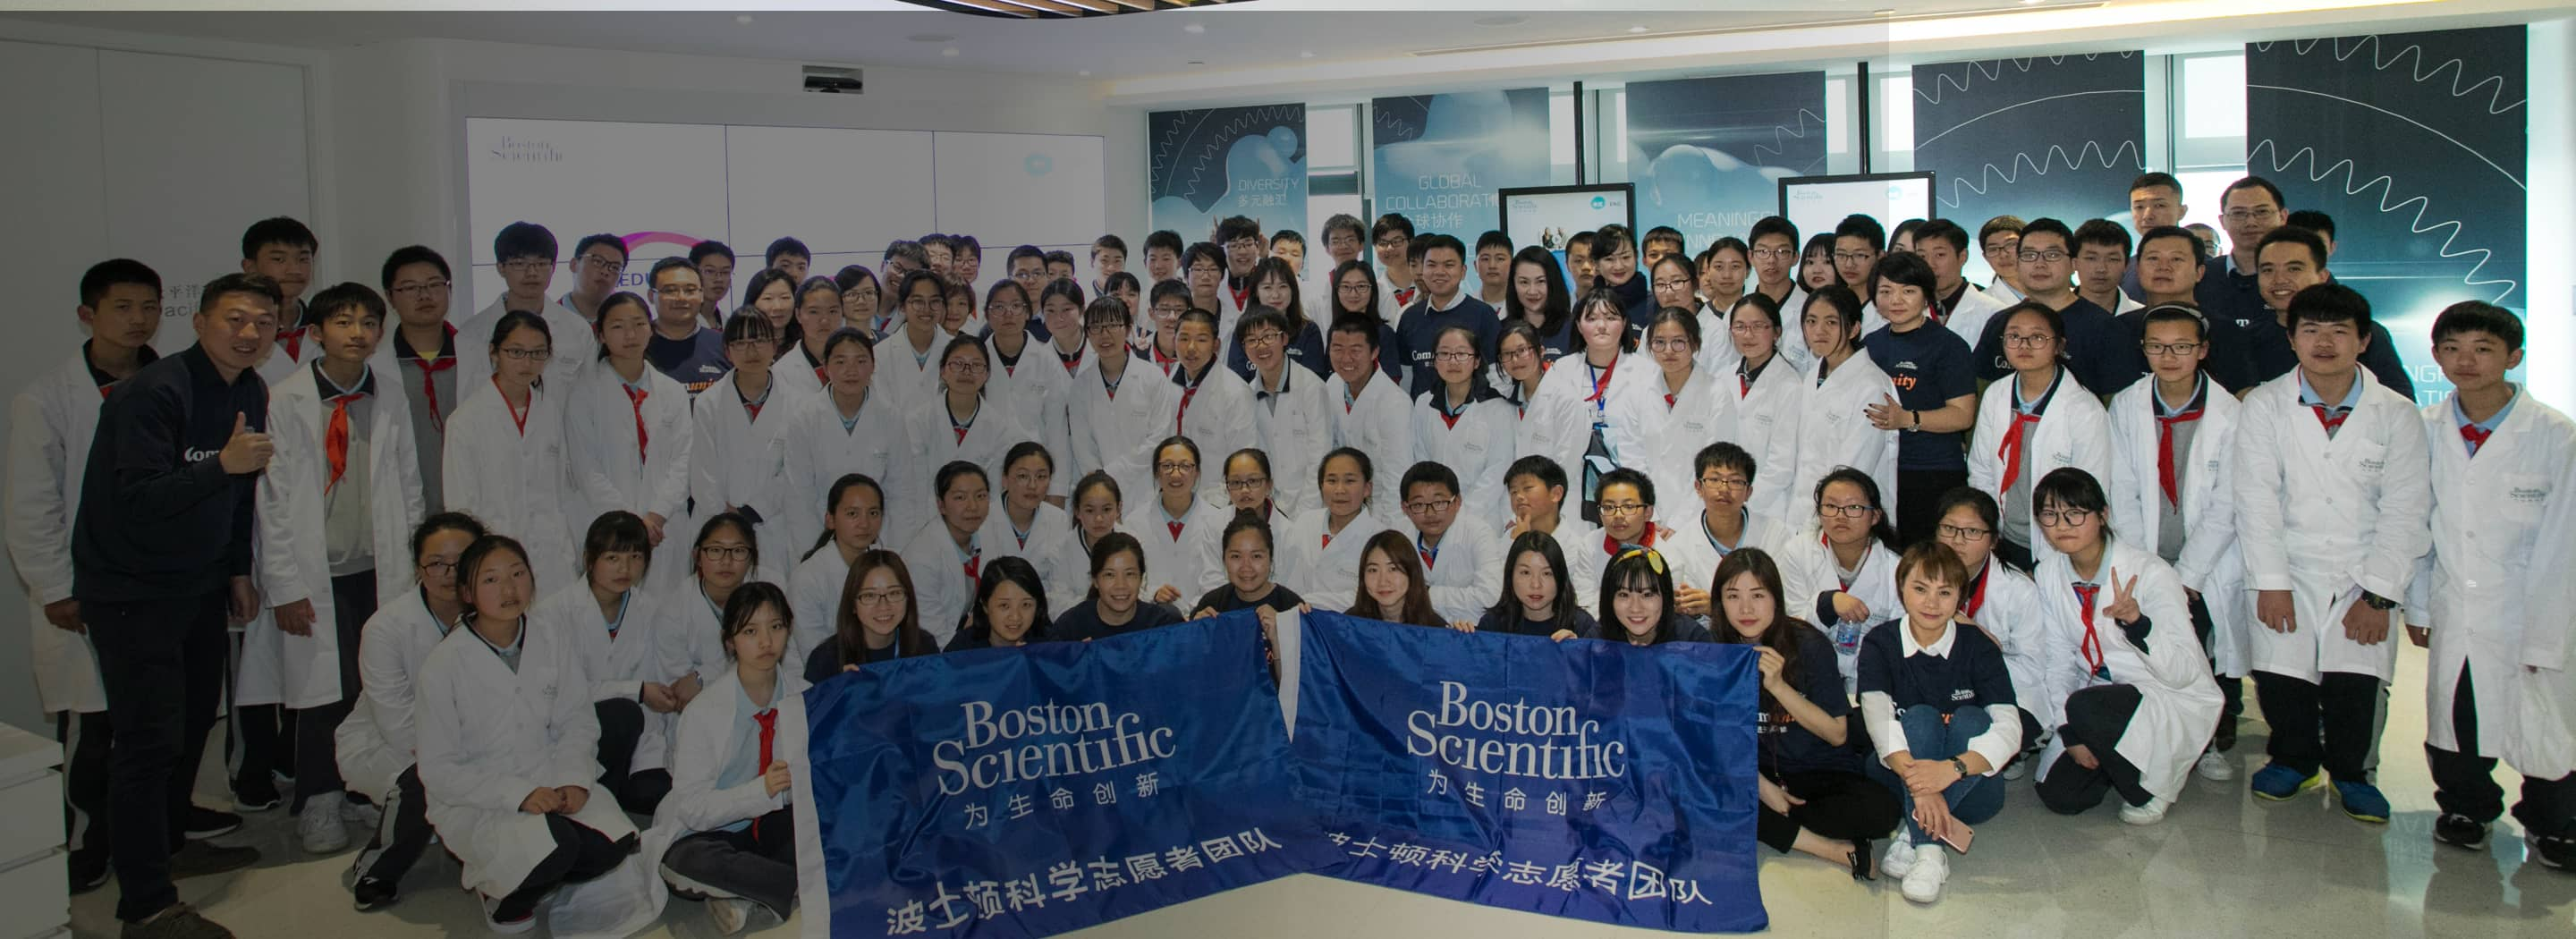 Group photo of Boston Scientific employees